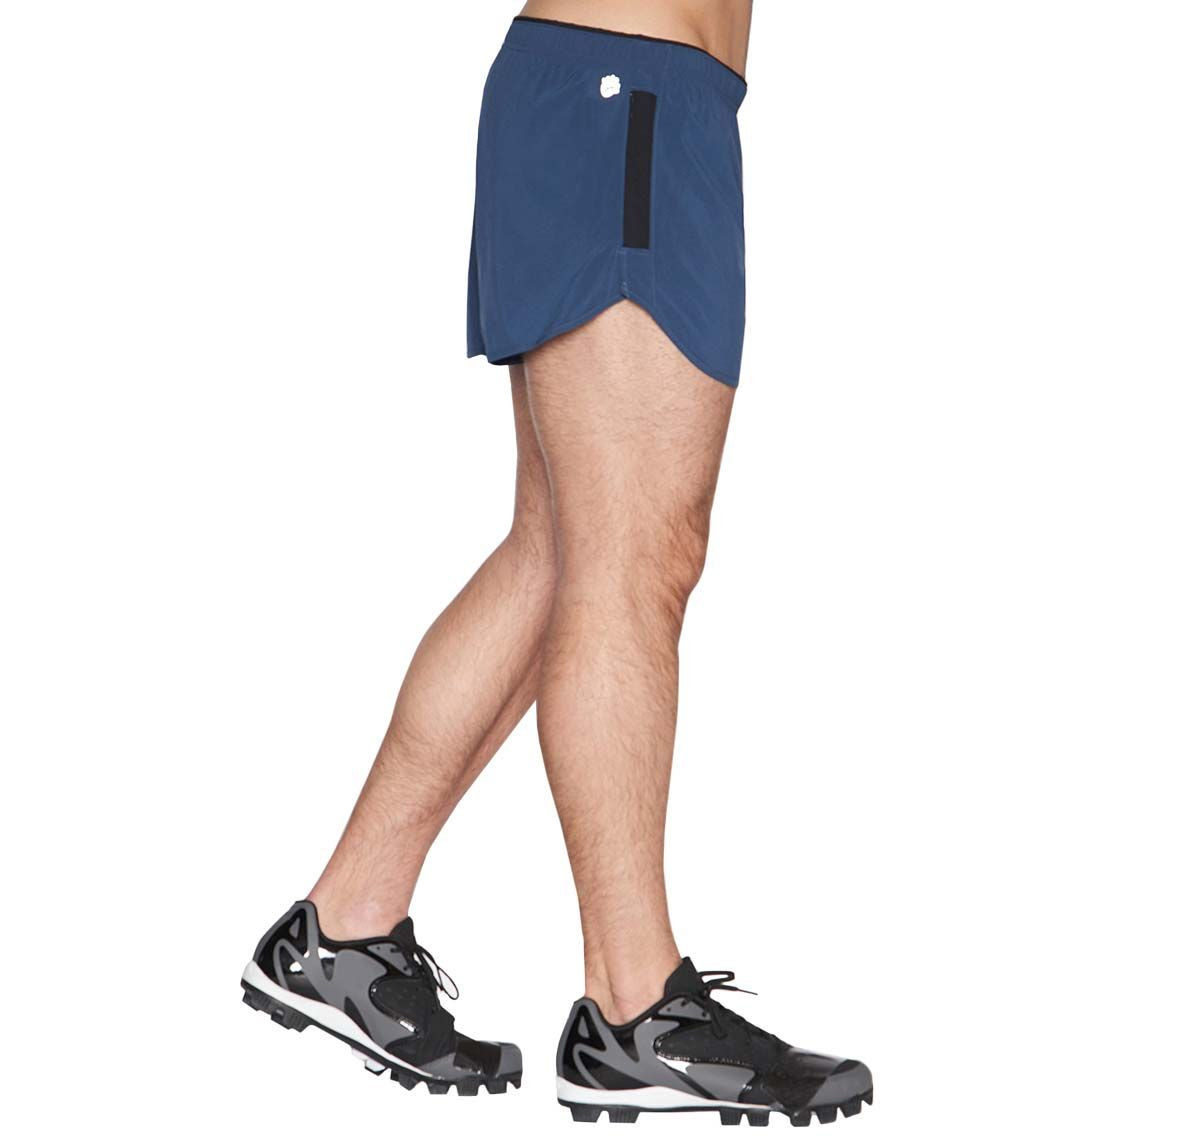 C-IN2 Short de sport GRIP ATHLETHIC RUN SHORT 4965-461, bleu marine